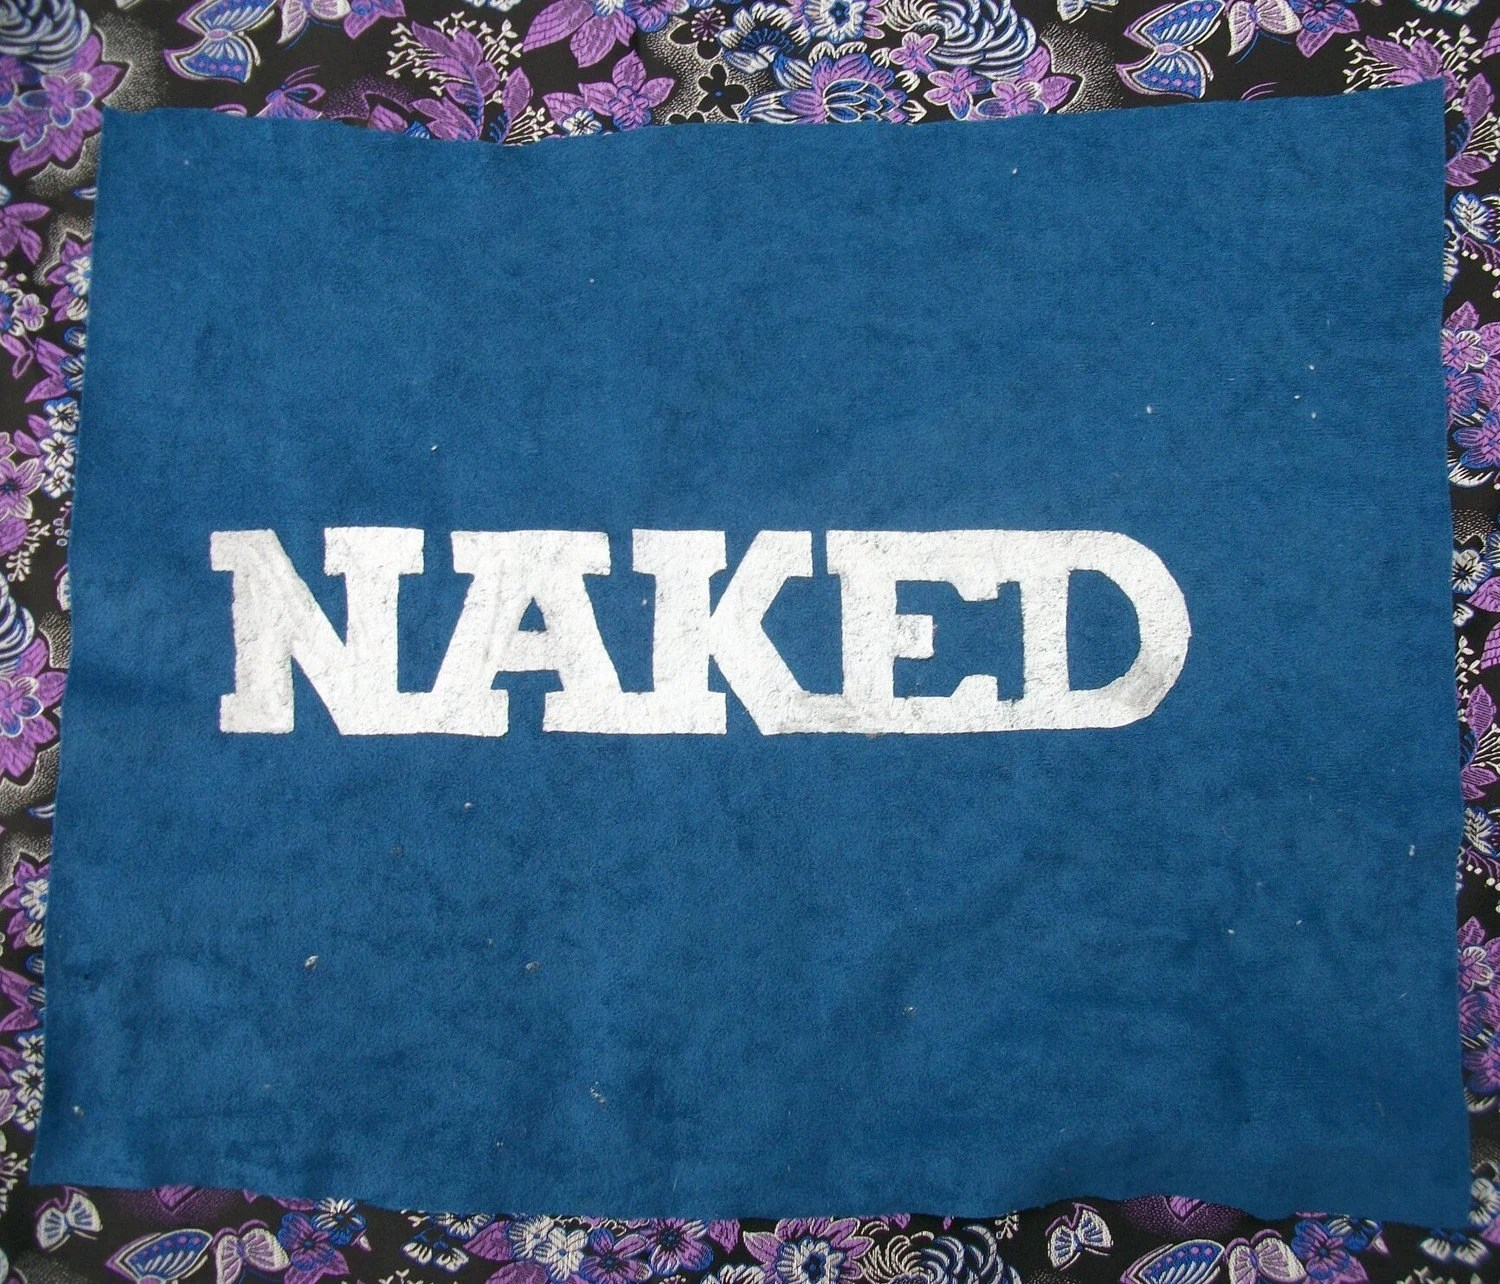 FREE -   Naked on Blue Velvet - Painting by NIK